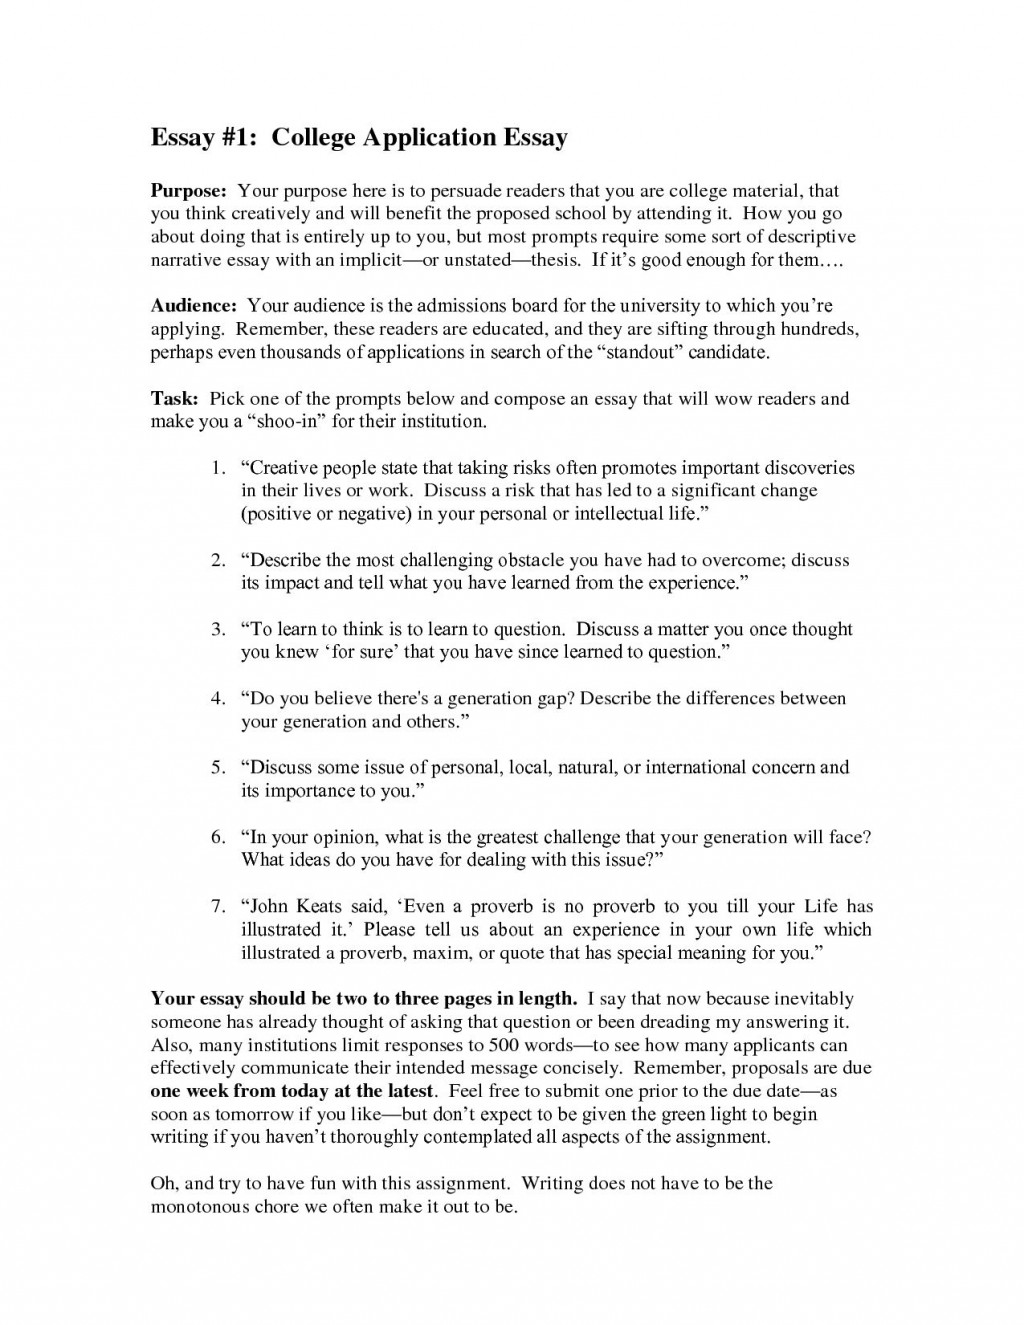 010 Experiment Research Paper Frightening Topics Method Large